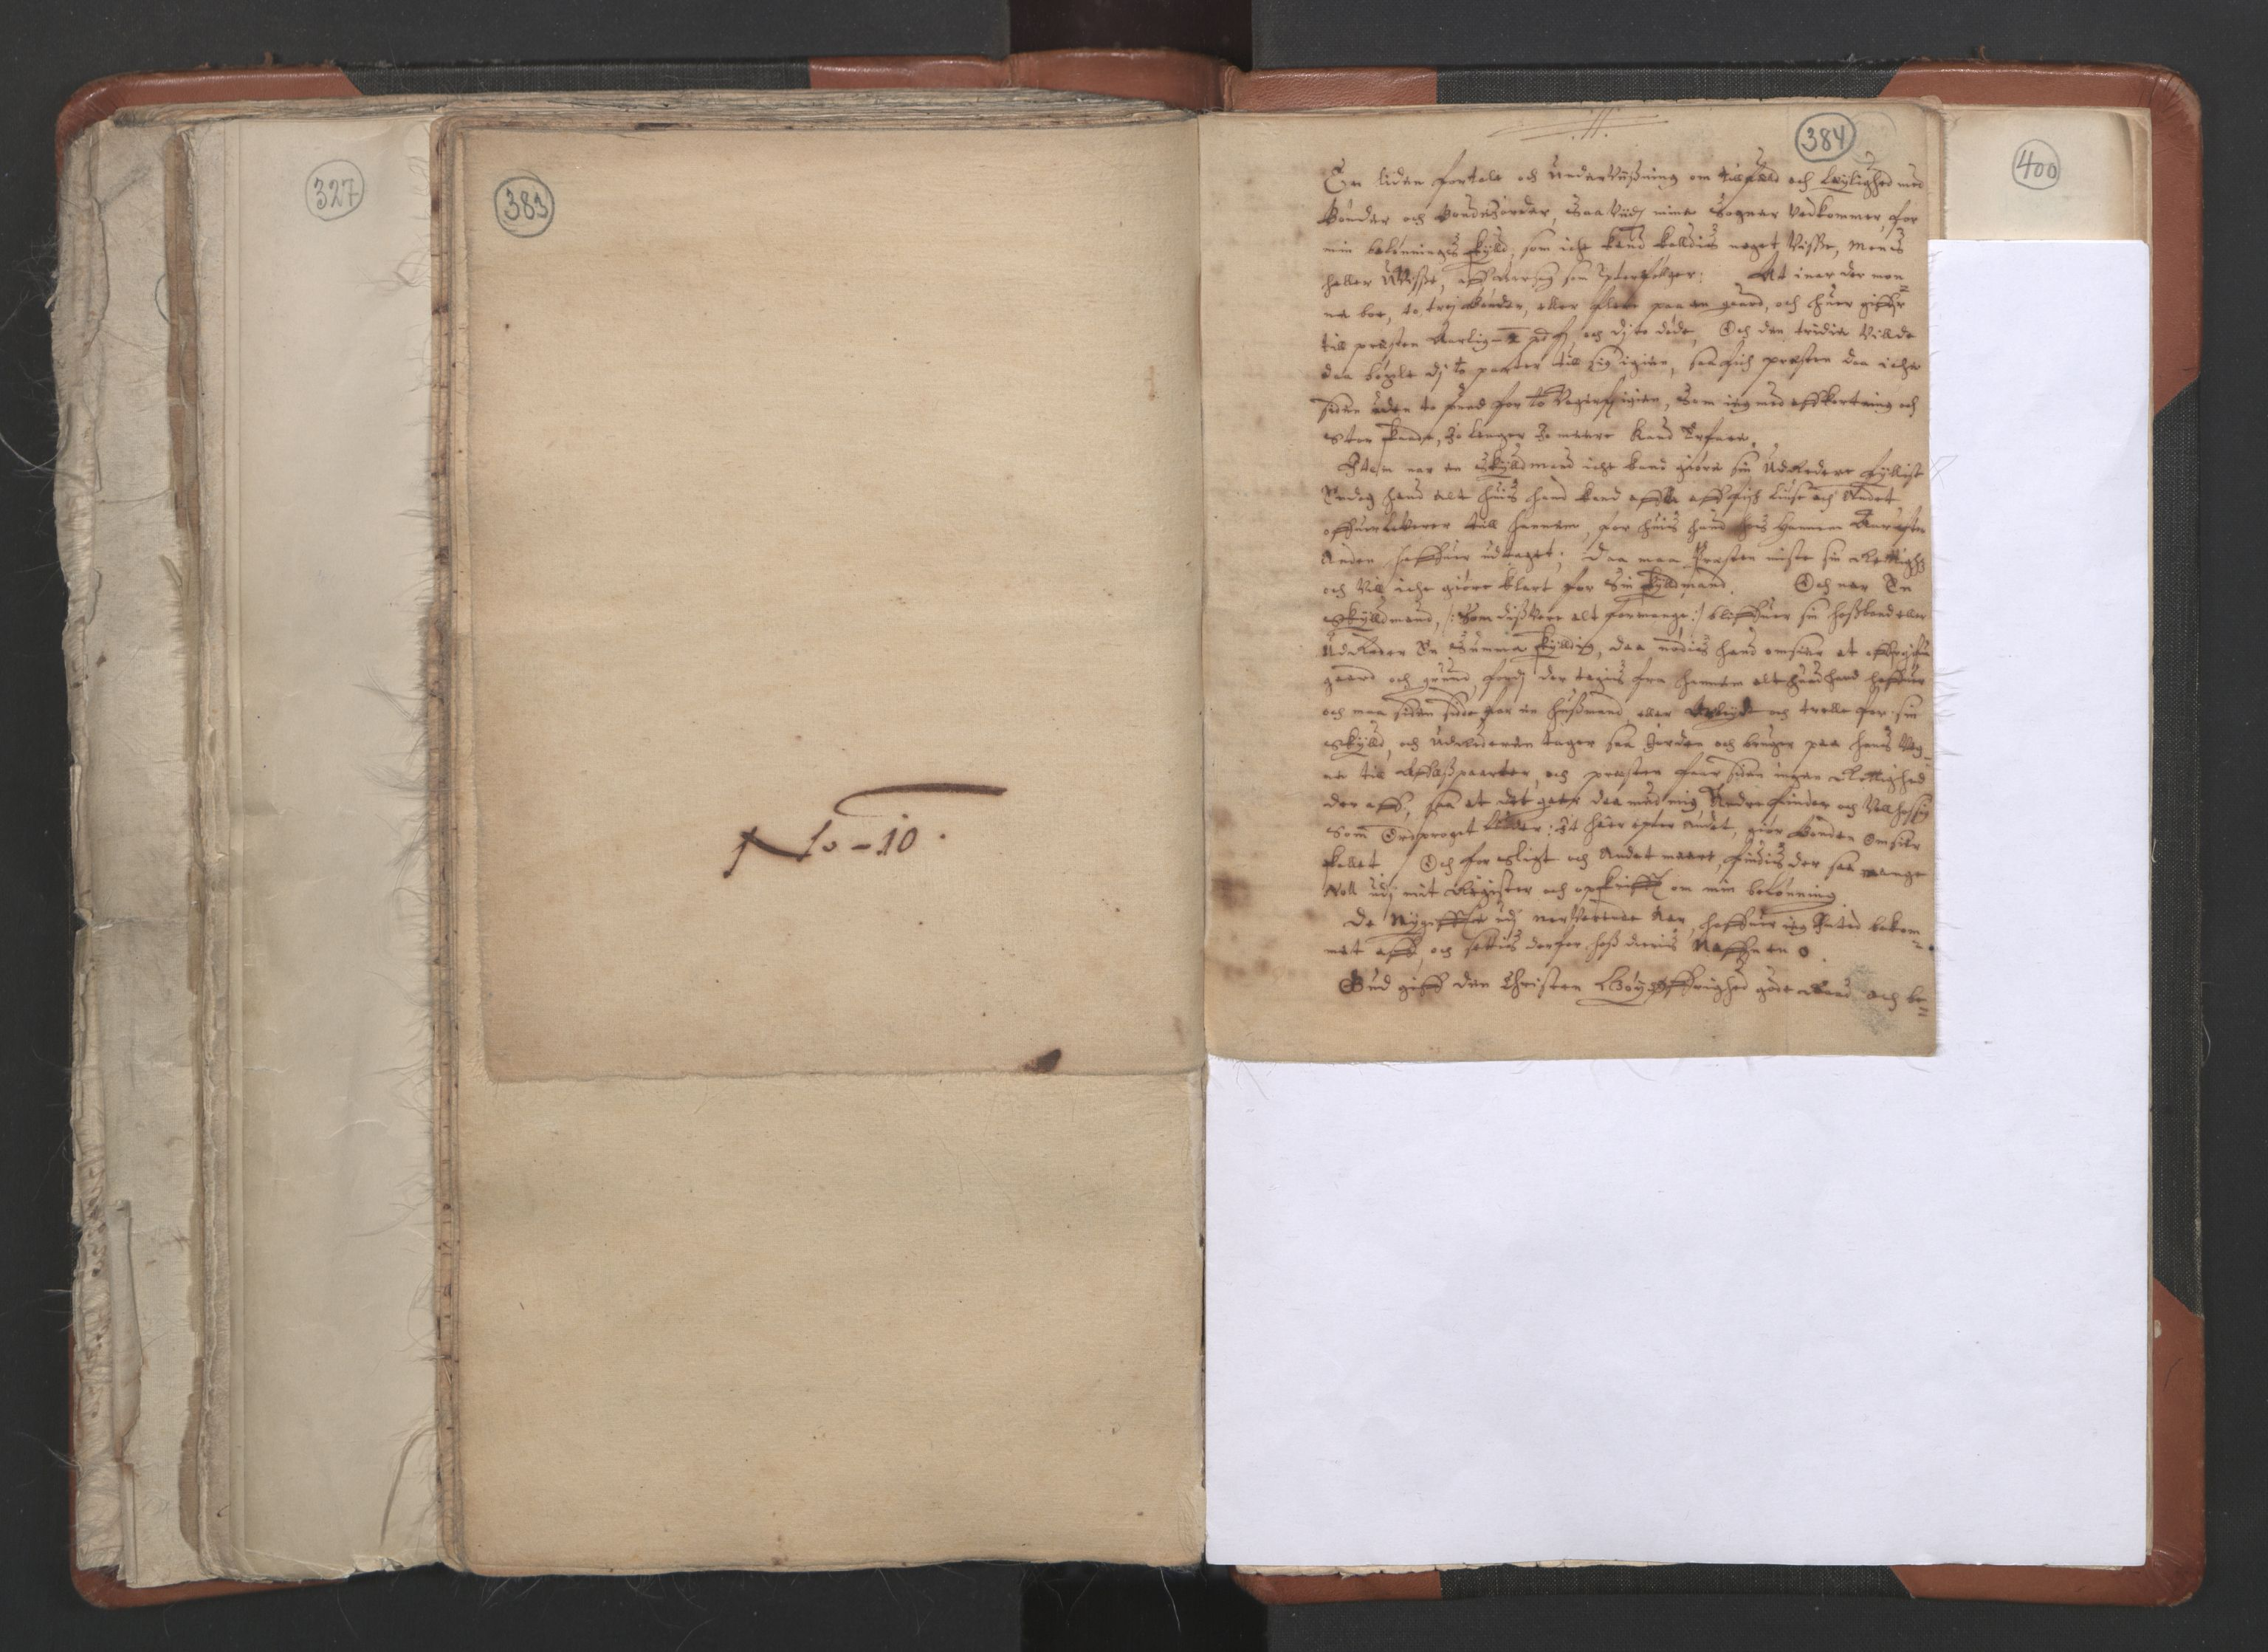 RA, Vicar's Census 1664-1666, no. 36: Lofoten and Vesterålen deanery, Senja deanery and Troms deanery, 1664-1666, p. 383-384